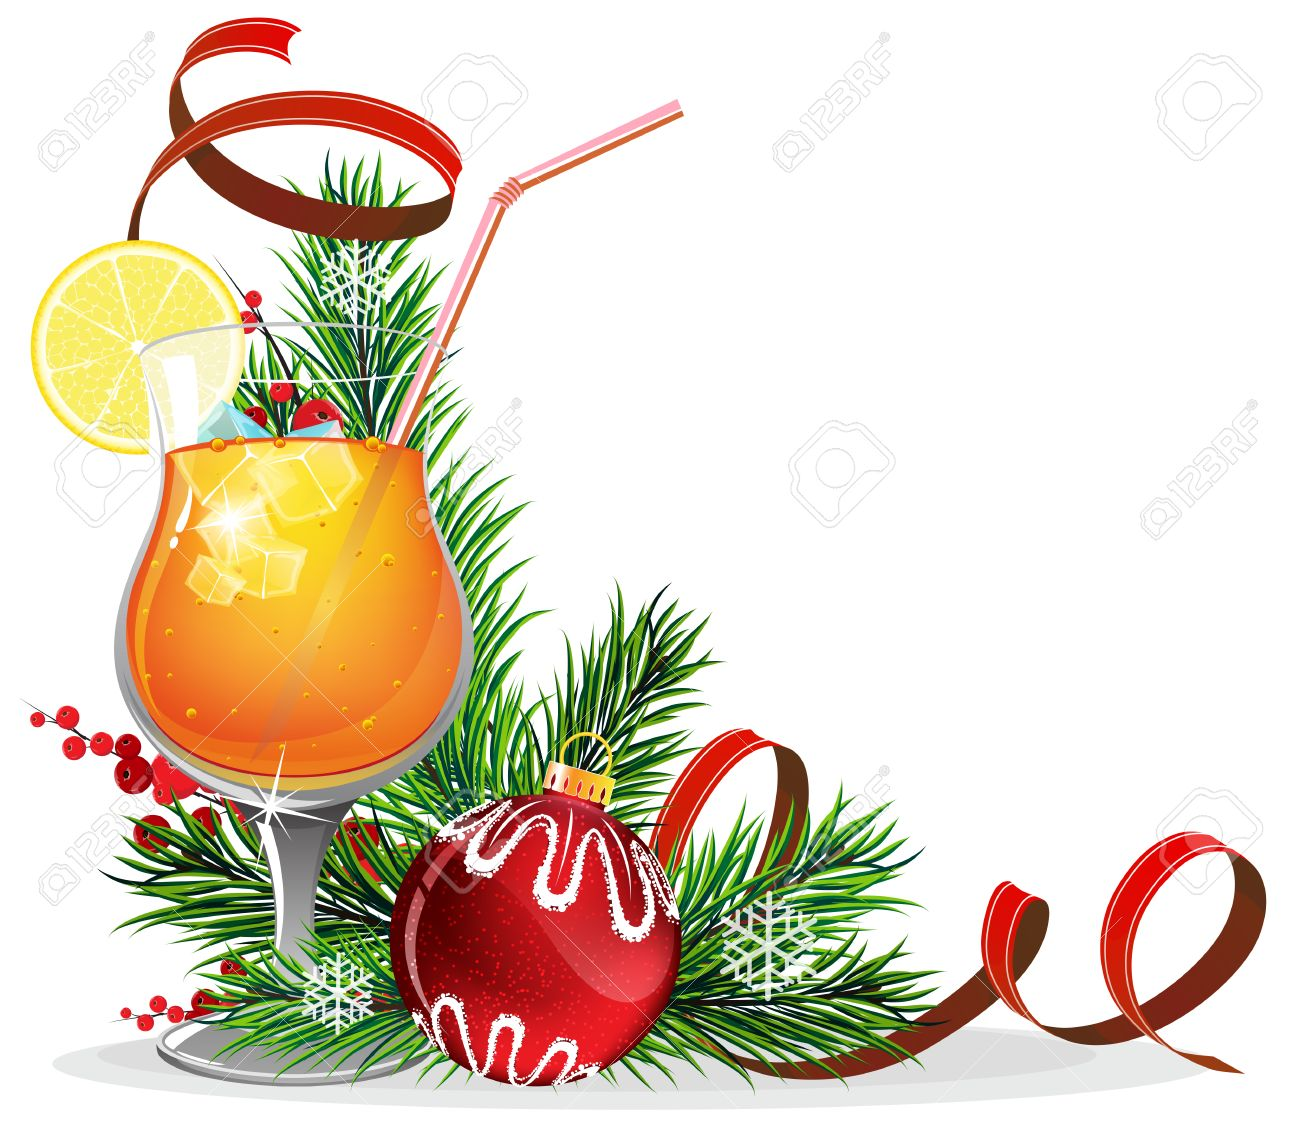 Orange Cocktail With Lemon And Ice Cubes And Christmas Decorations